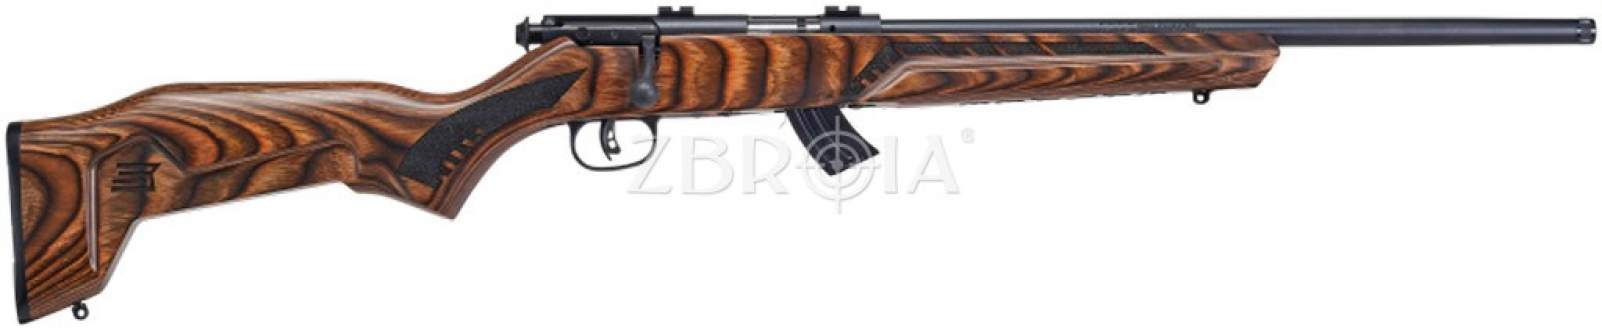 Винтовка малокалиберная Savage Mark II Minimalist 18 кал. 22 LR